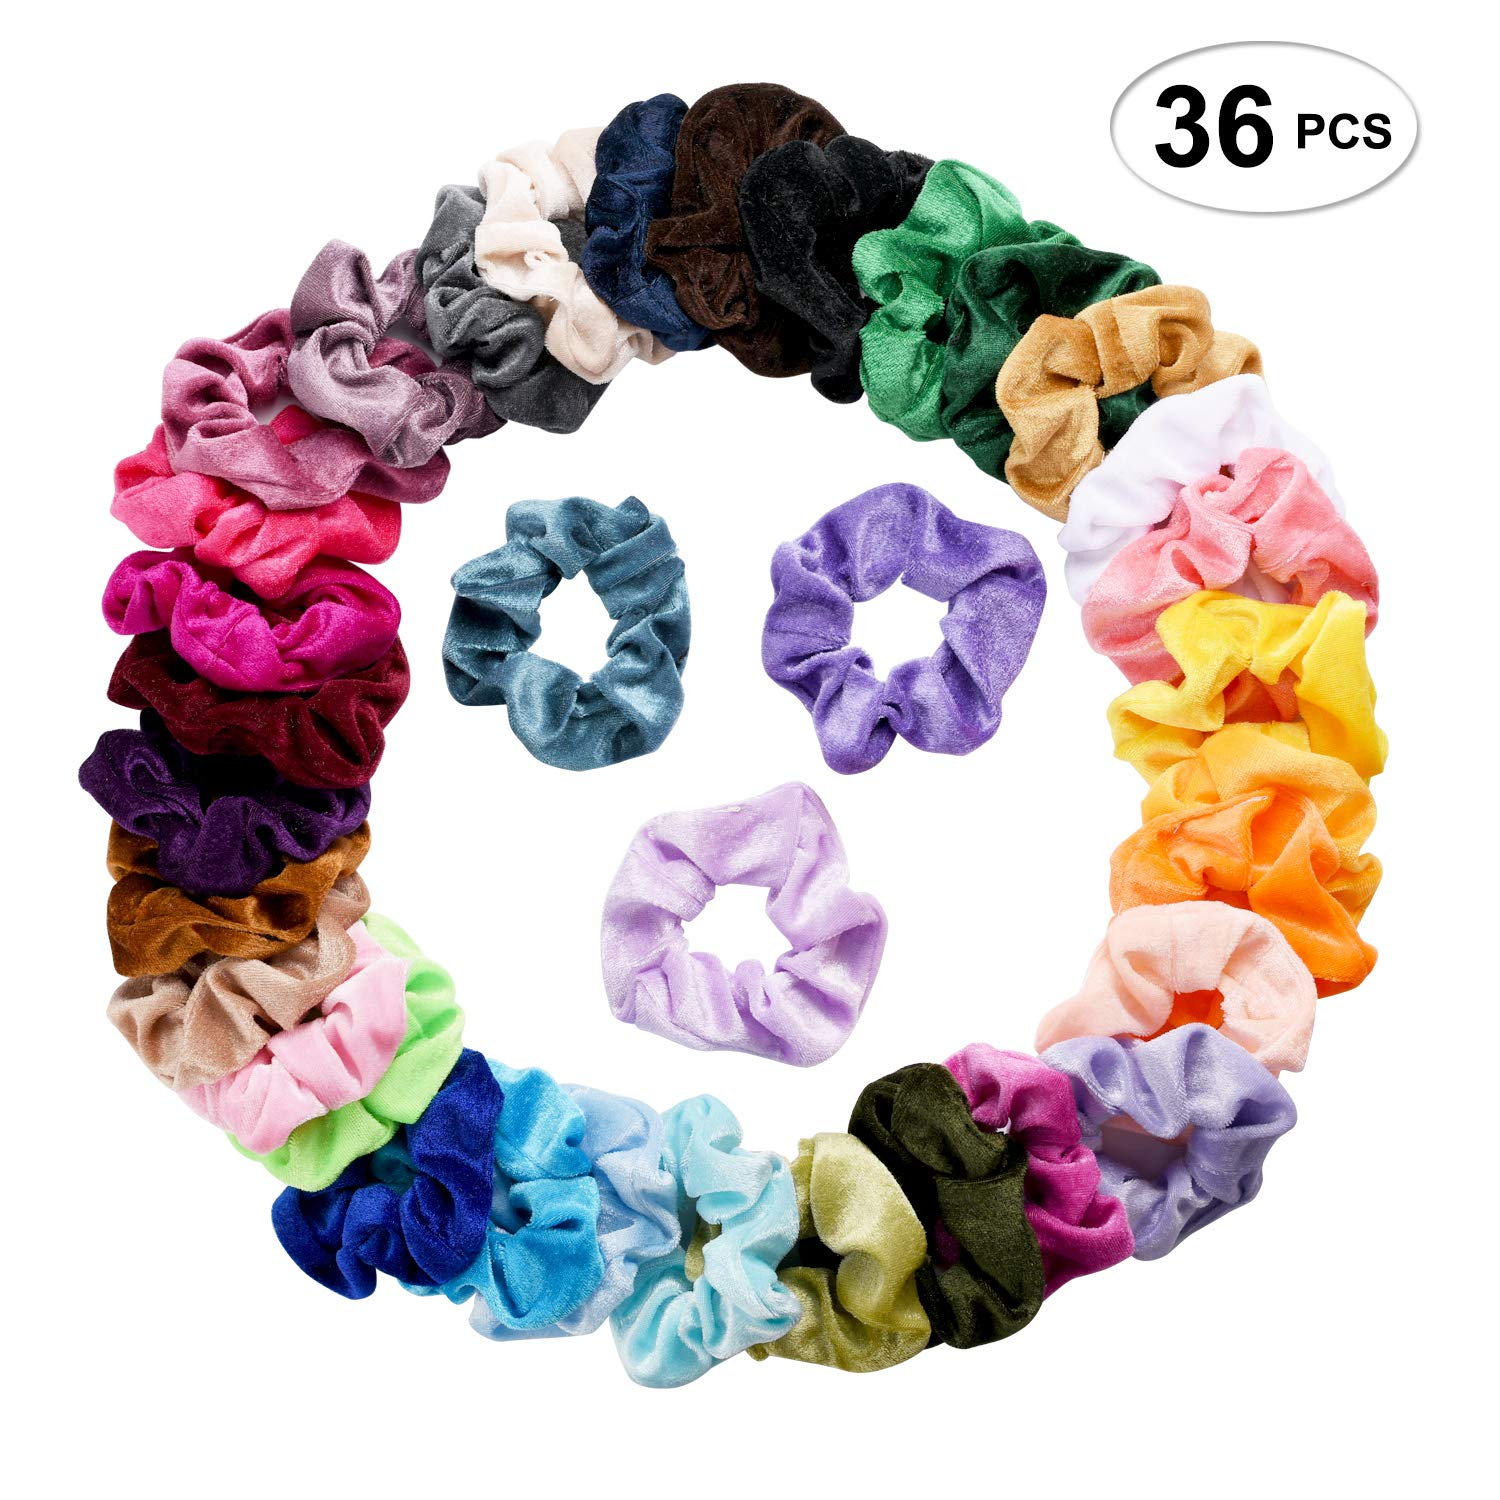 36 Pcs Hair Scrunchies Velvet Elastic Hair Bands Scrunchy Hair Ties Ropes Scrunchie for Women or Girls Hair Accessories - 36 Assorted Colors Scrunchies (36 PCS Velvet Hair Scrunchies)